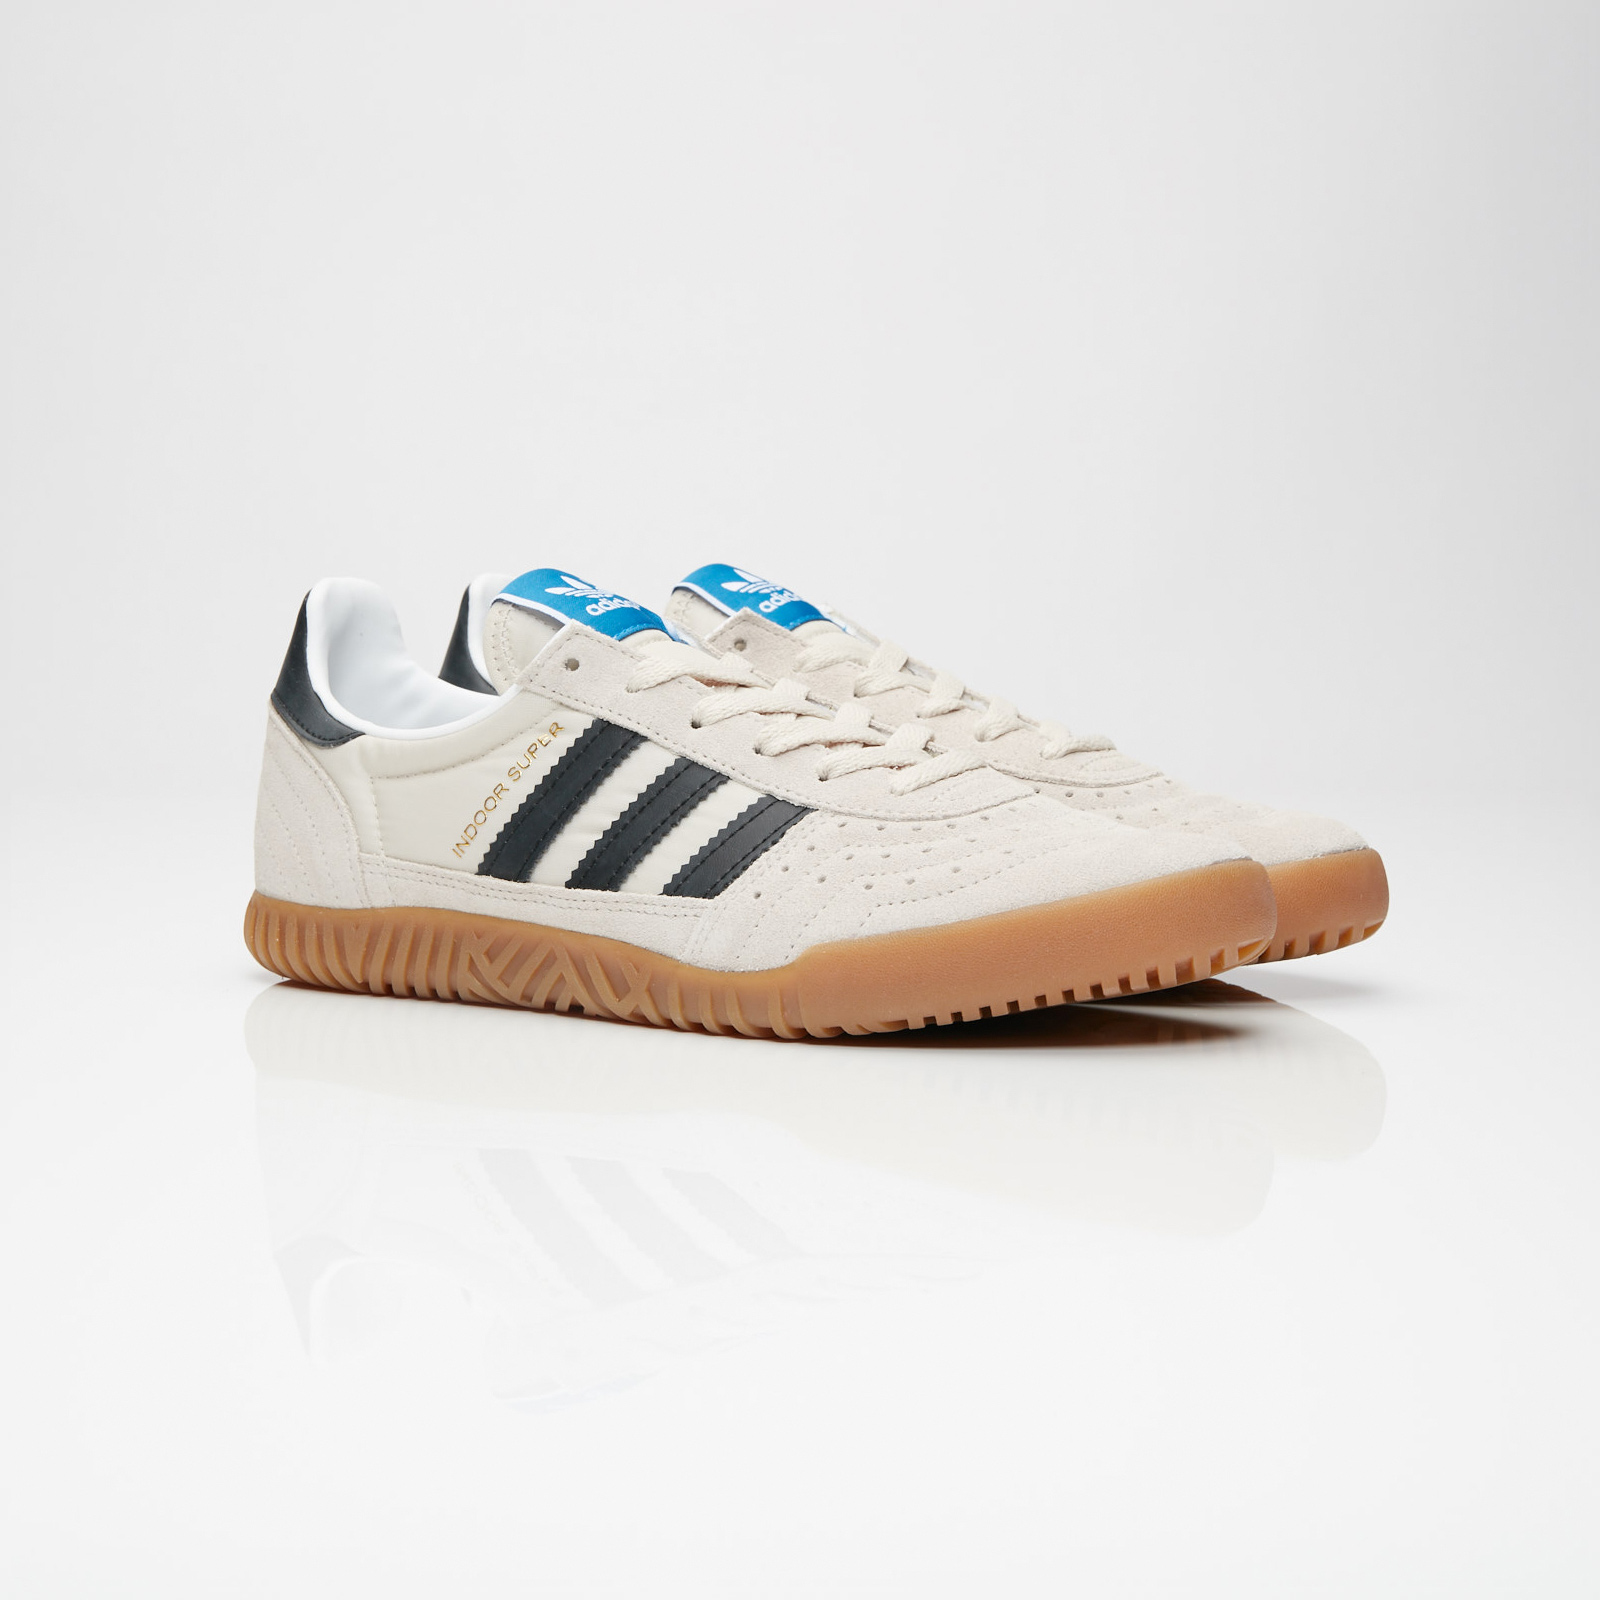 a57a4884e5b5 adidas Indoor Super - B41521 - Sneakersnstuff